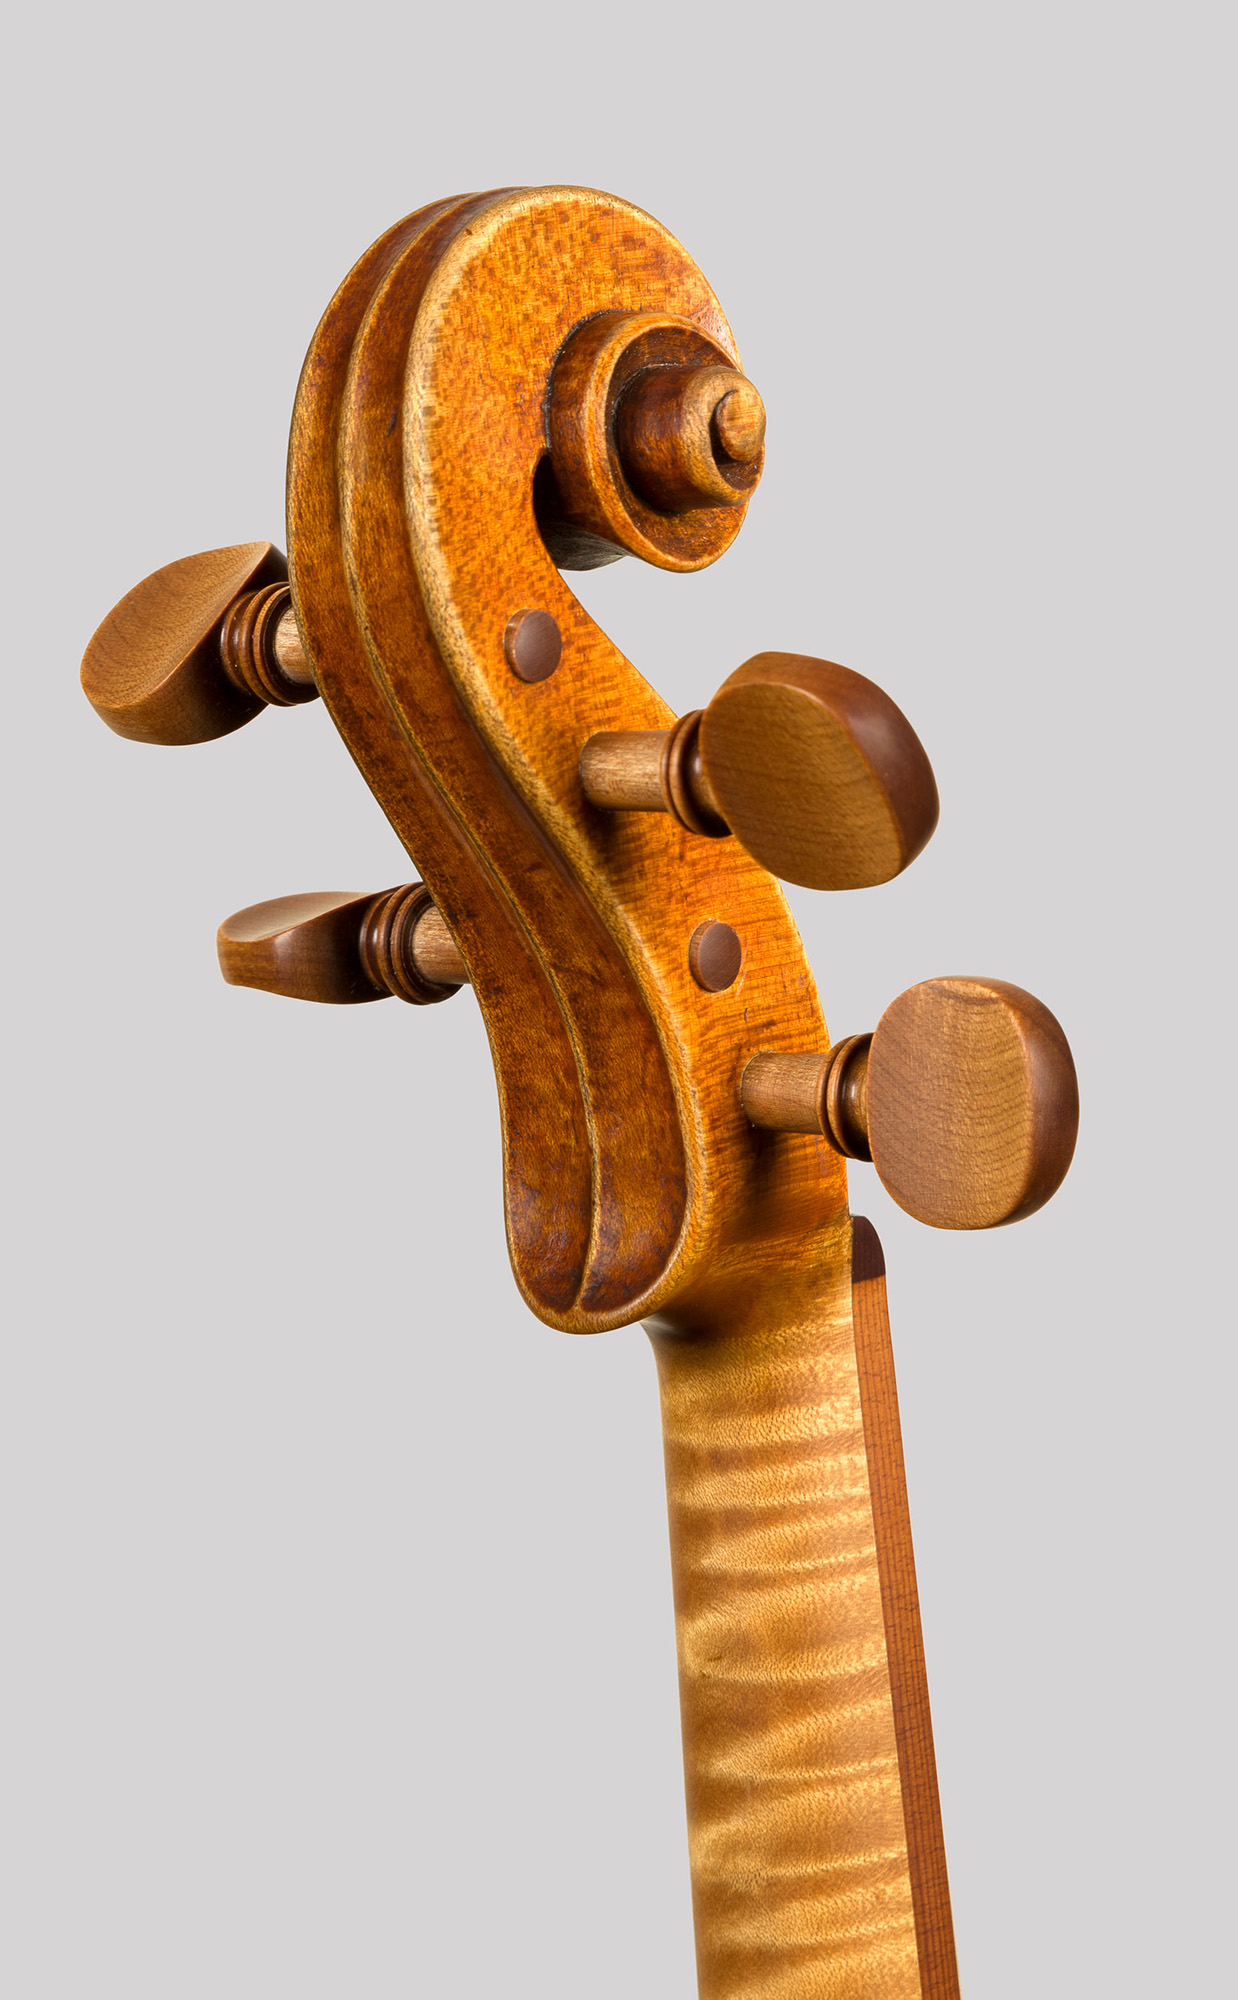 Pegs made from Sonowood spruce. Picture by Mihail Dron & Andreas Hochuli